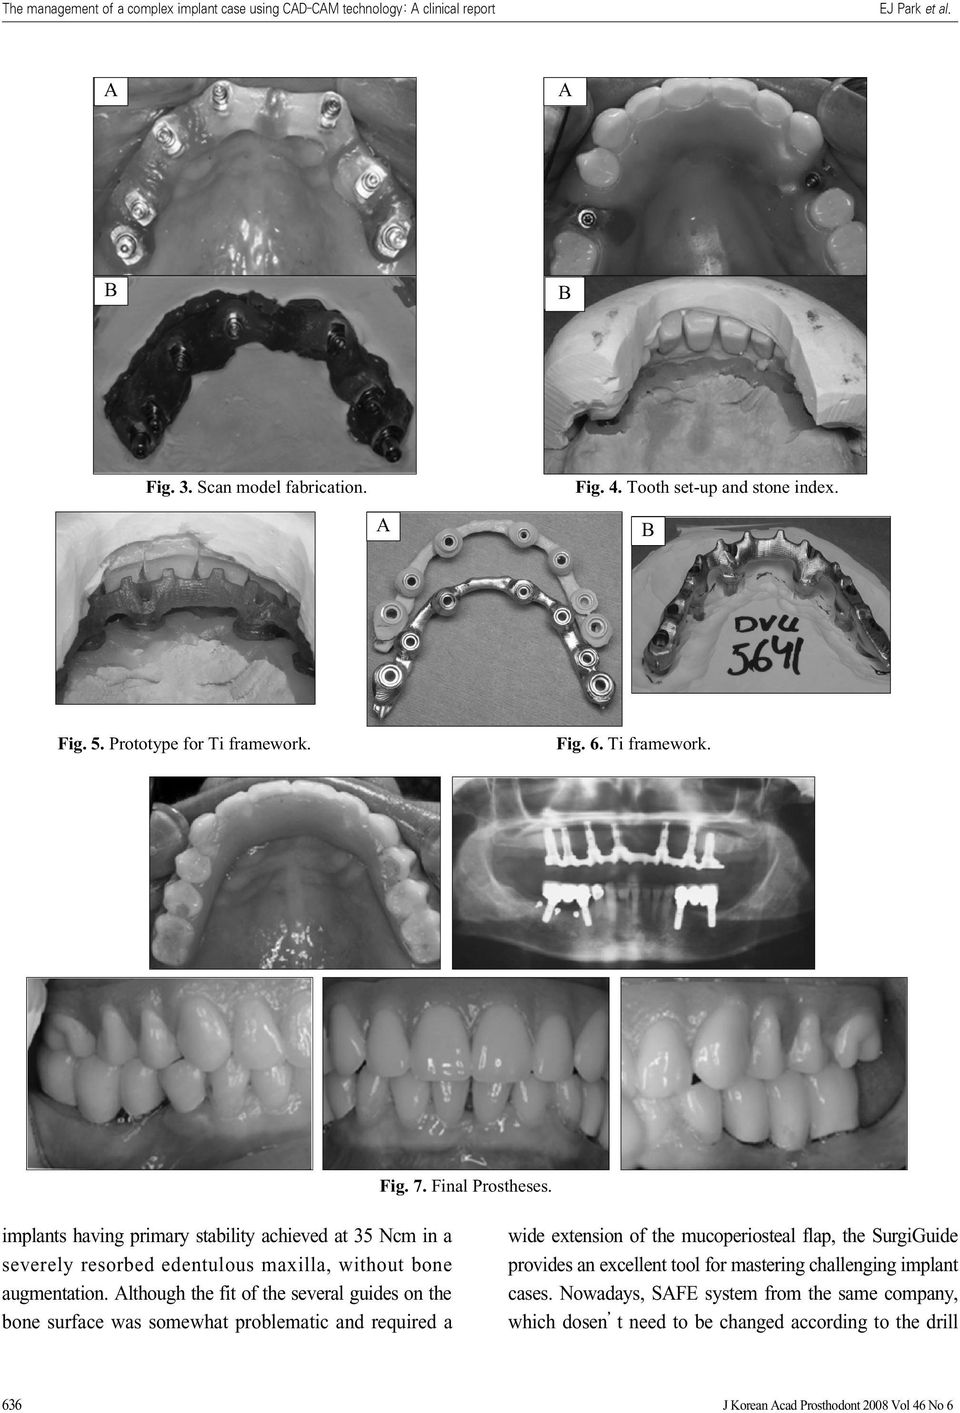 implants having primary stability achieved at 35 Ncm in a severely resorbed edentulous maxilla, without bone augmentation.